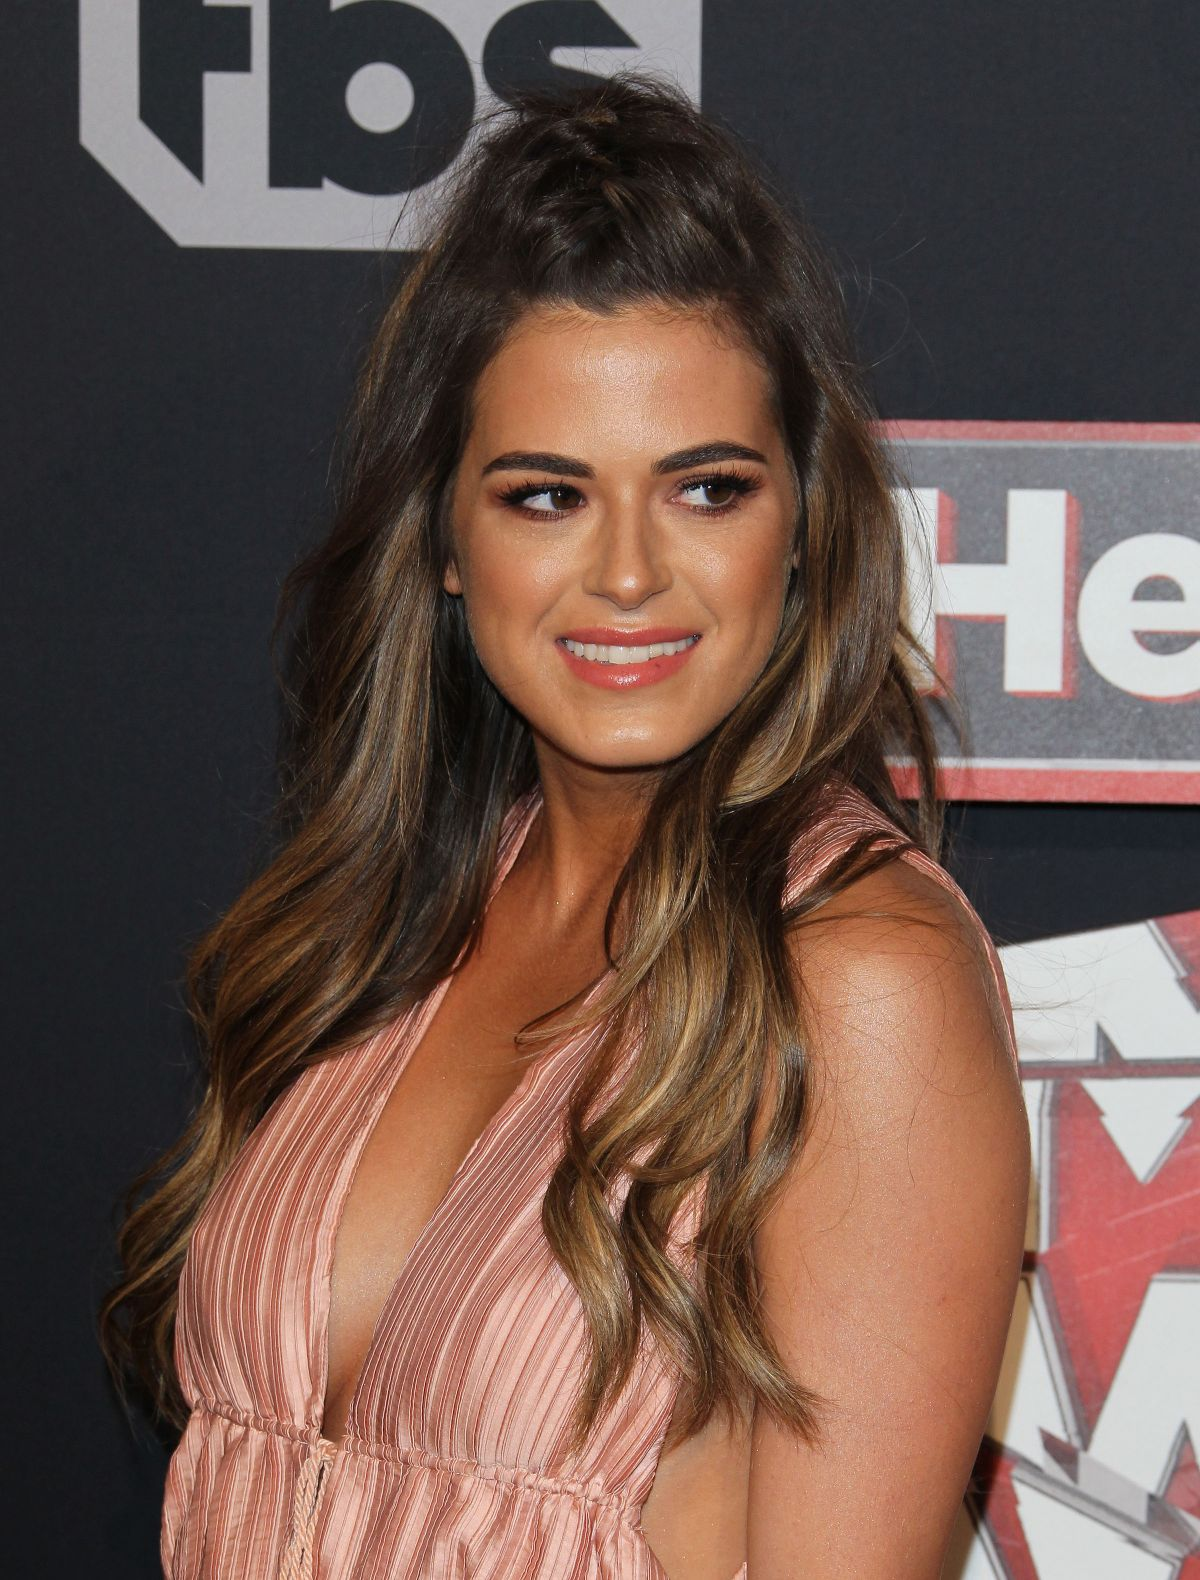 JOJO FLETCHER at 2017 iHeartRadio Music Awards in Los Angeles 03/05/2017